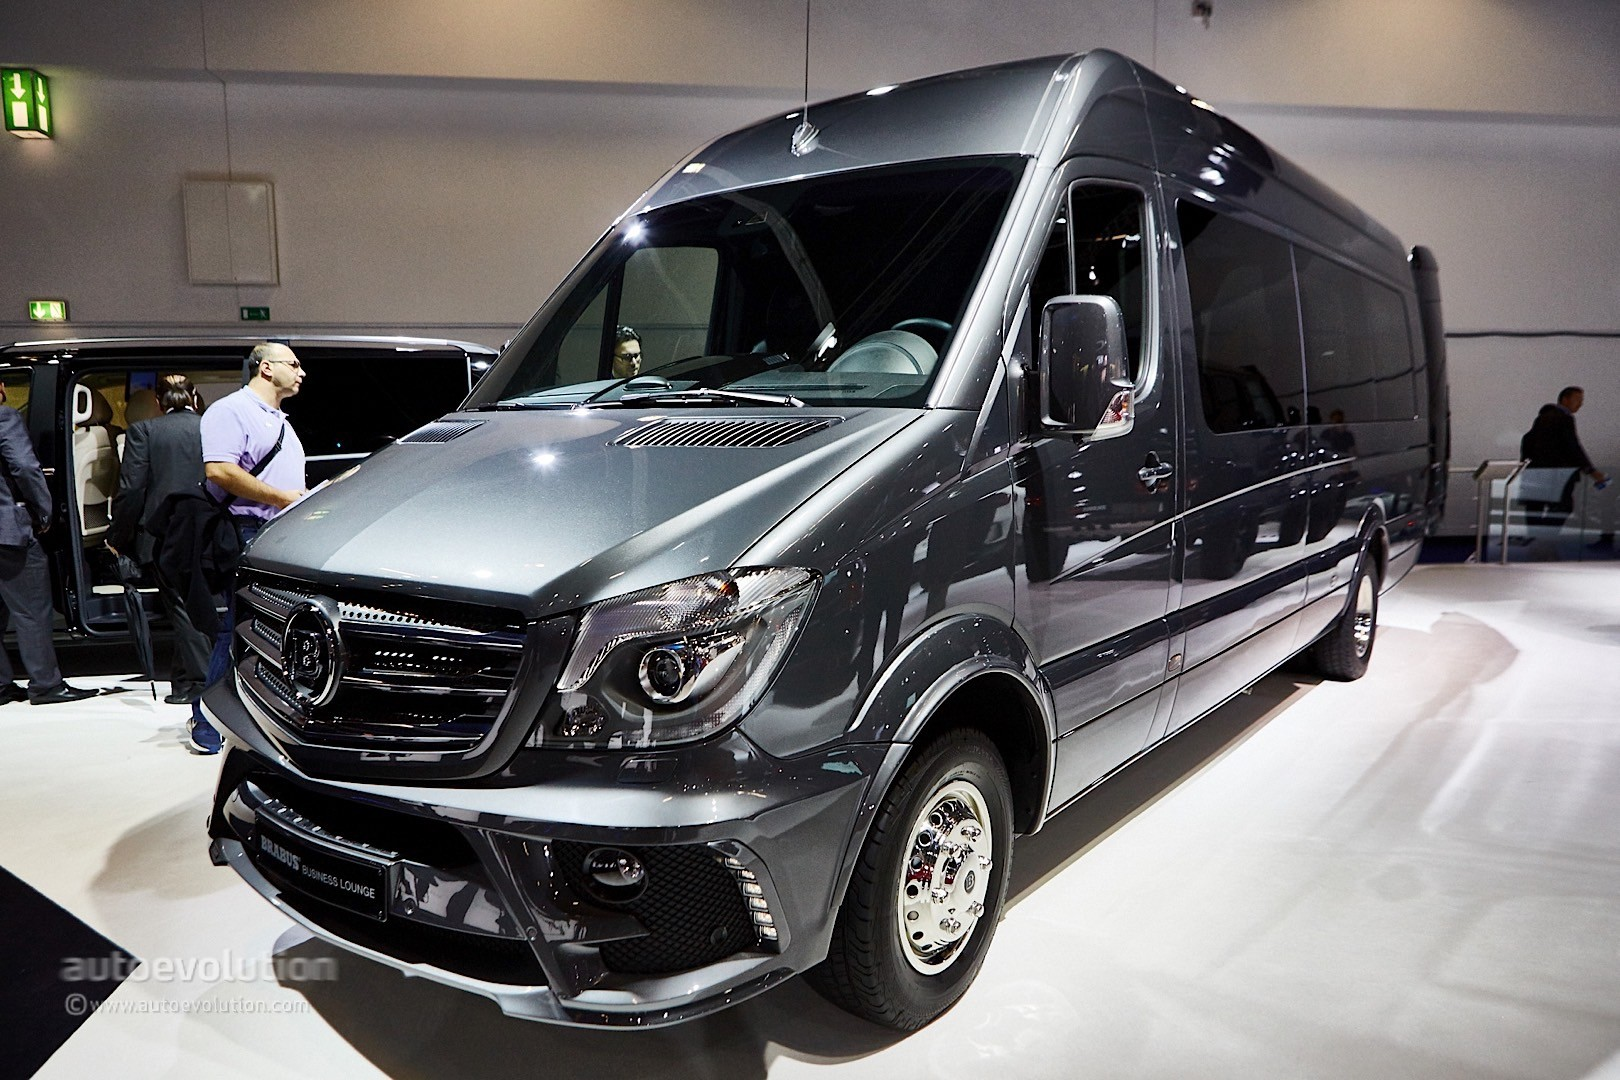 Brabus sprinter and v class fill the luxury van gap in for Mercedes benz sprinter luxury van price